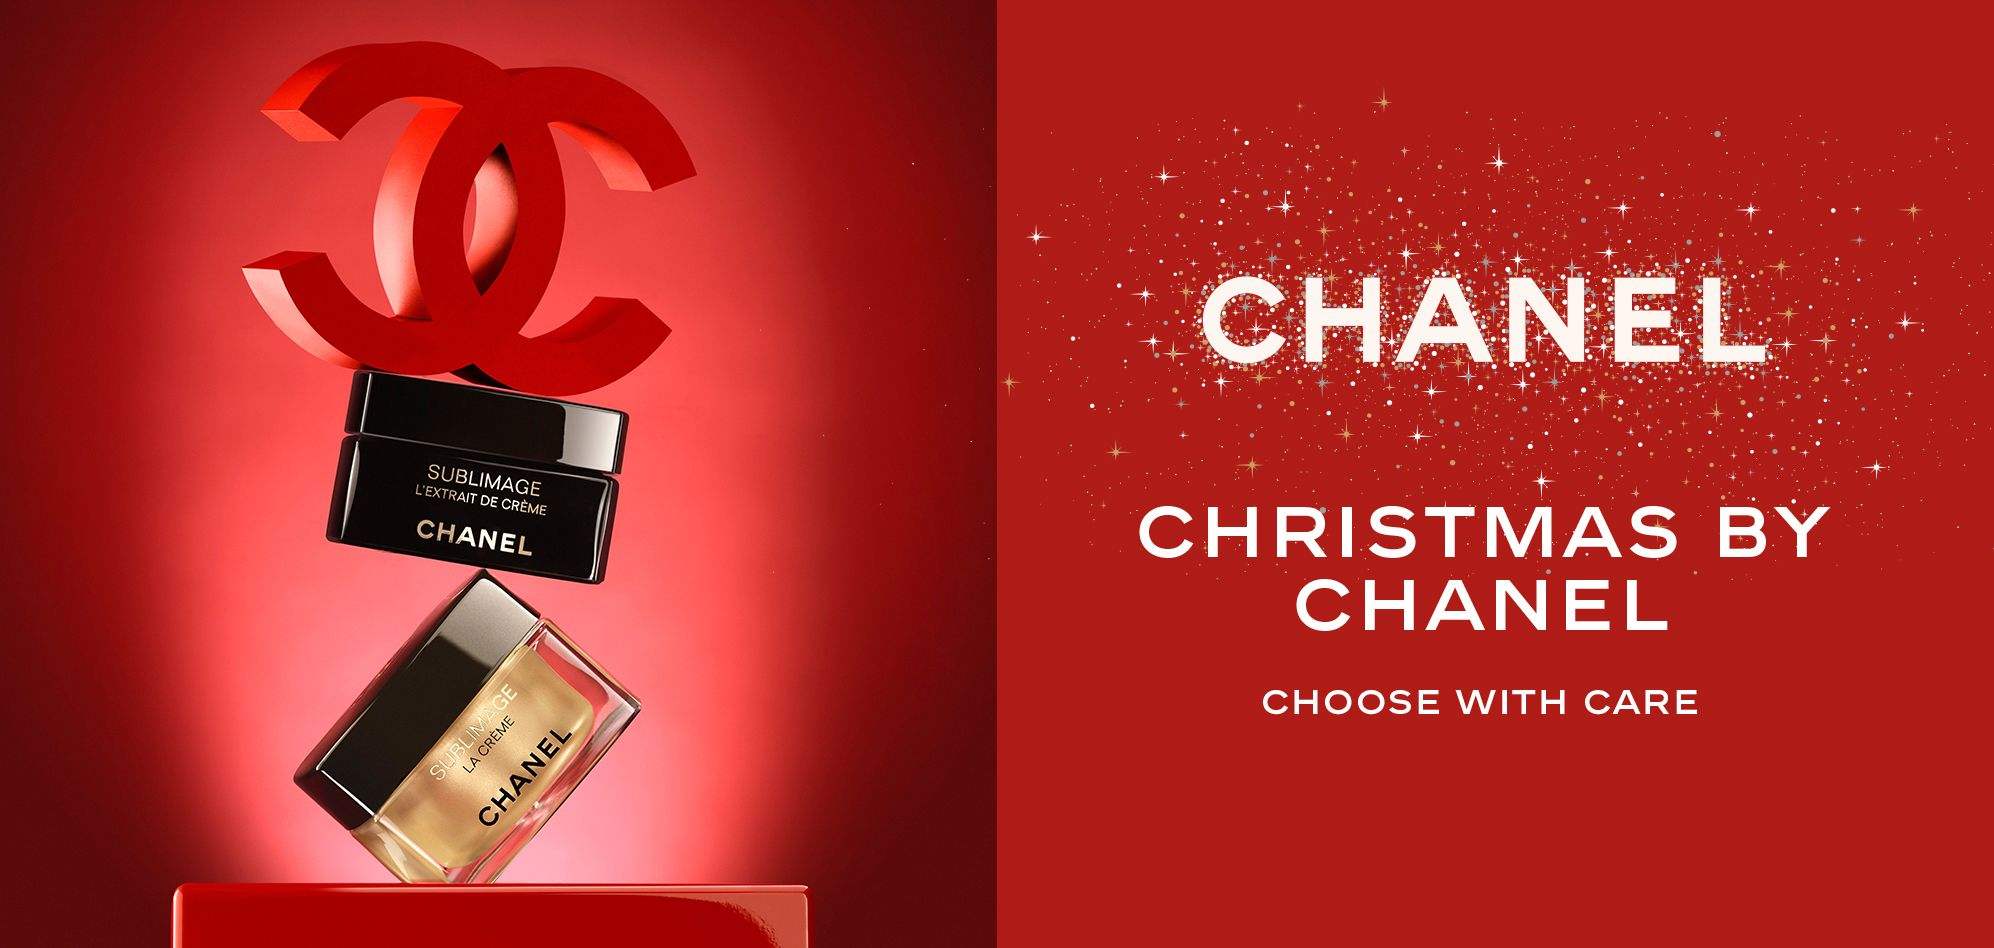 Christmas by Chanel